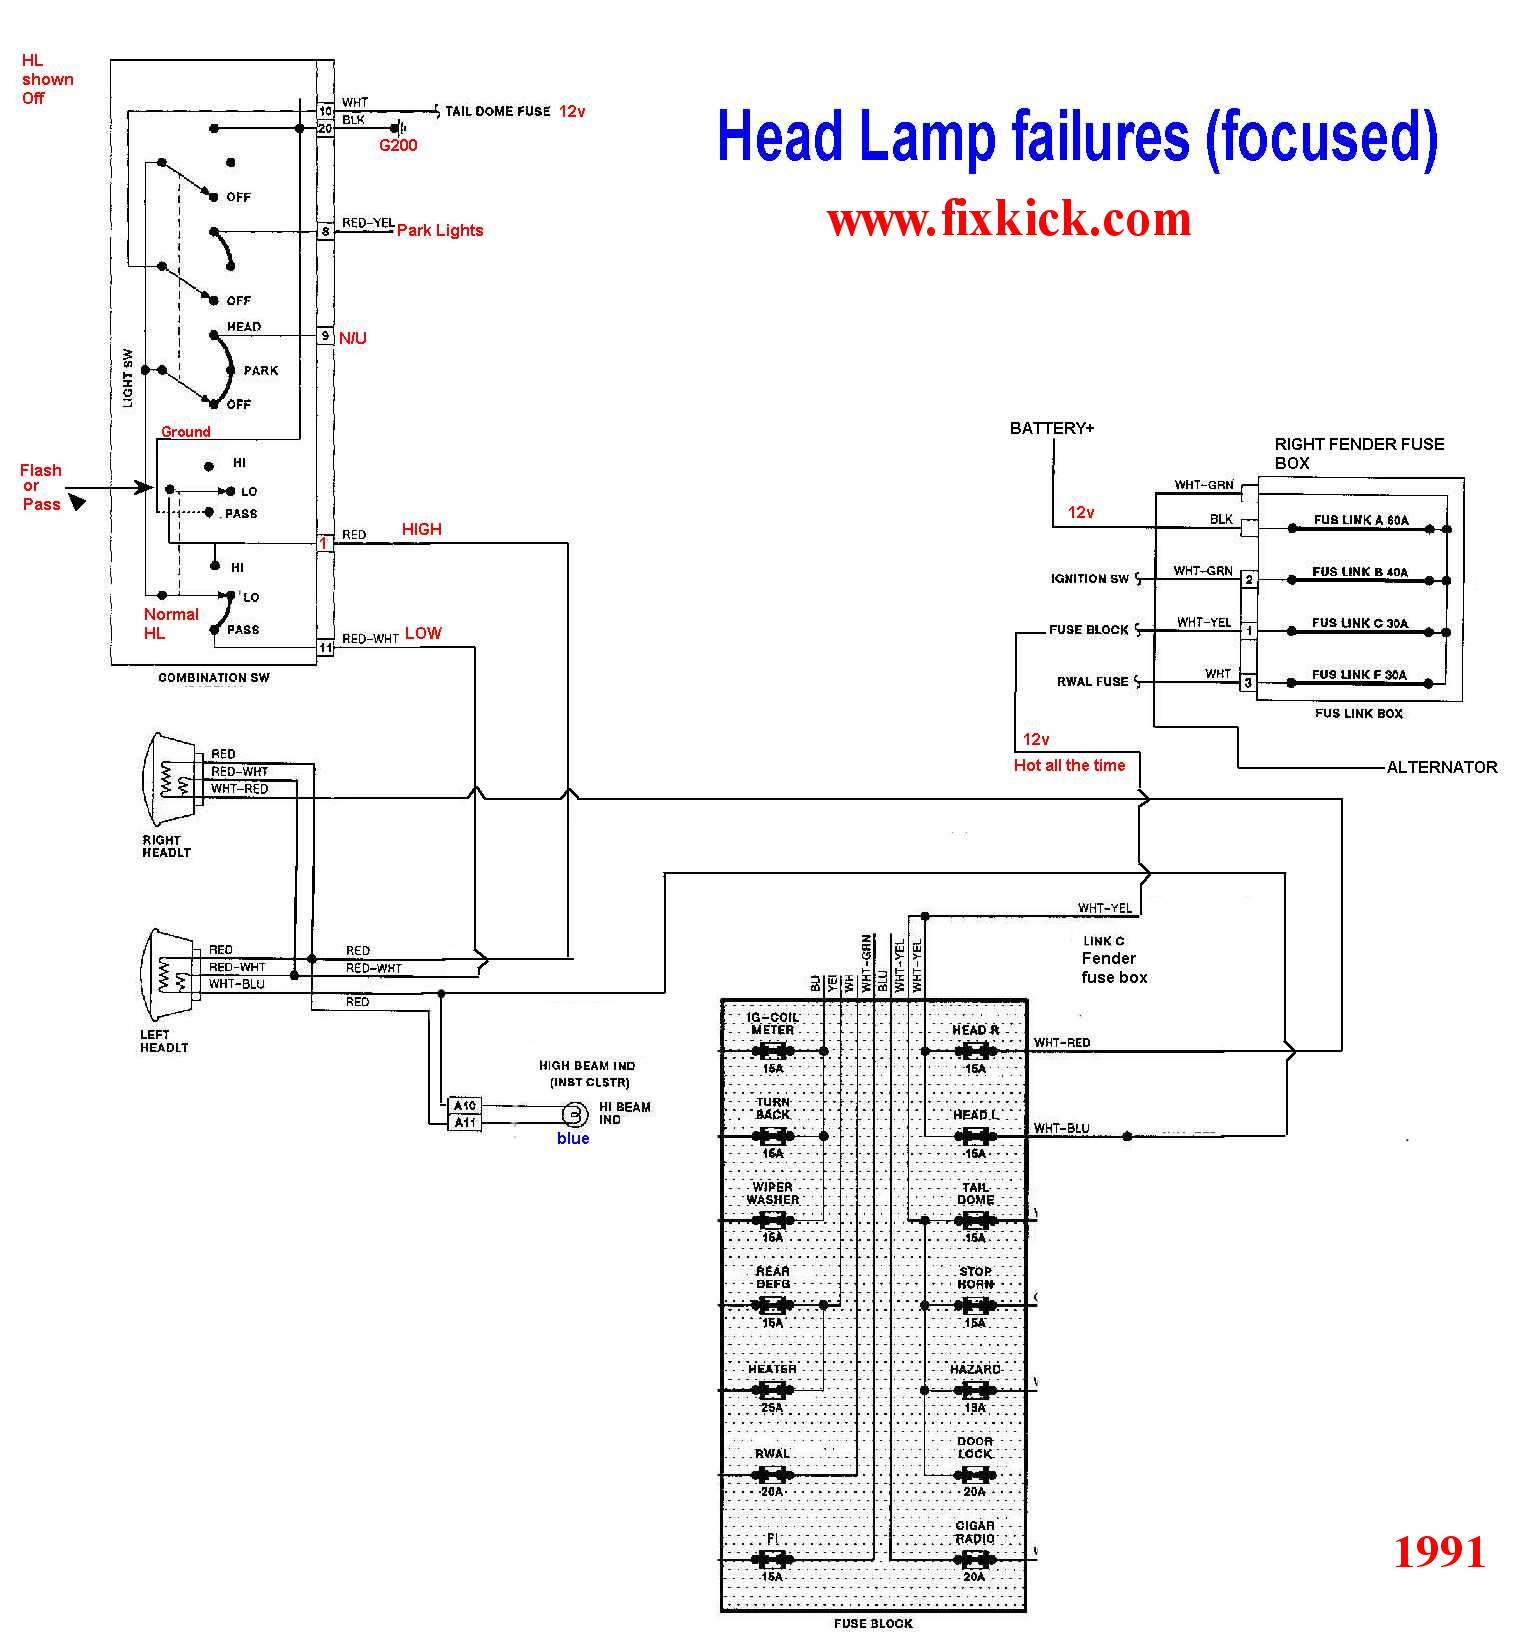 The 1991 unified Head light schematic, I made.